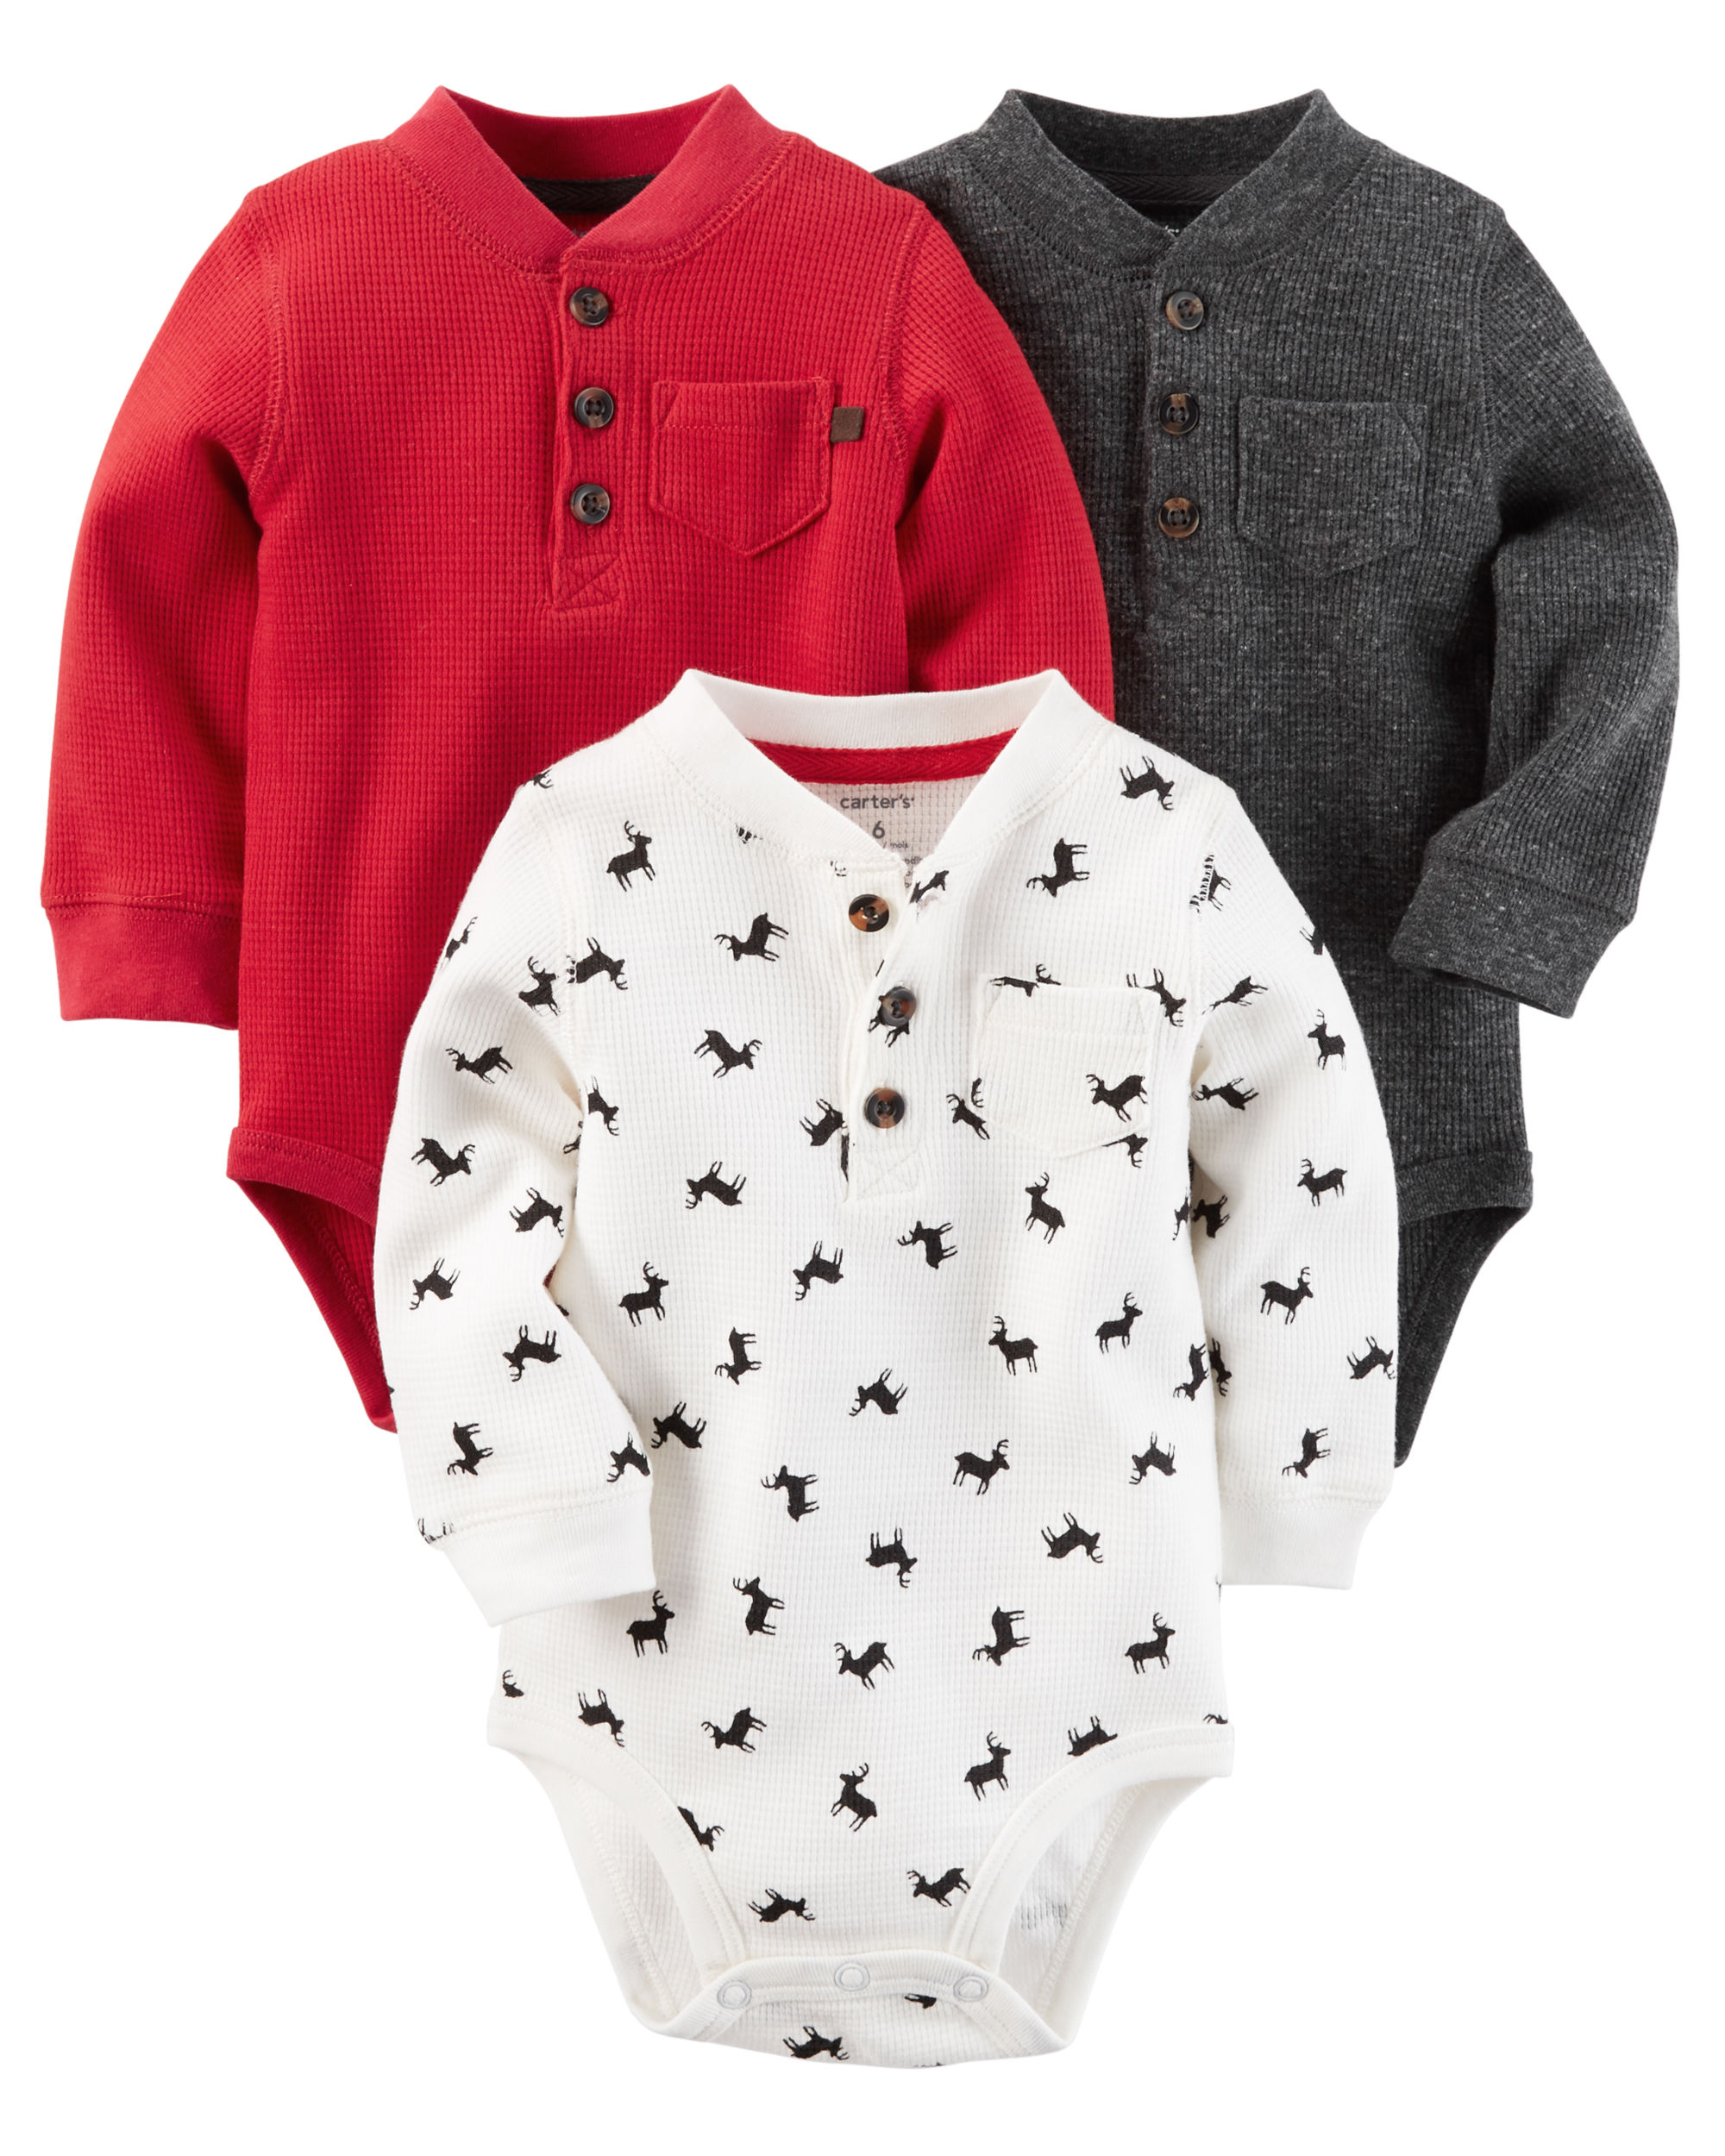 3-Pack Long-Sleeve Thermal Henley Bodysuits - $26.00